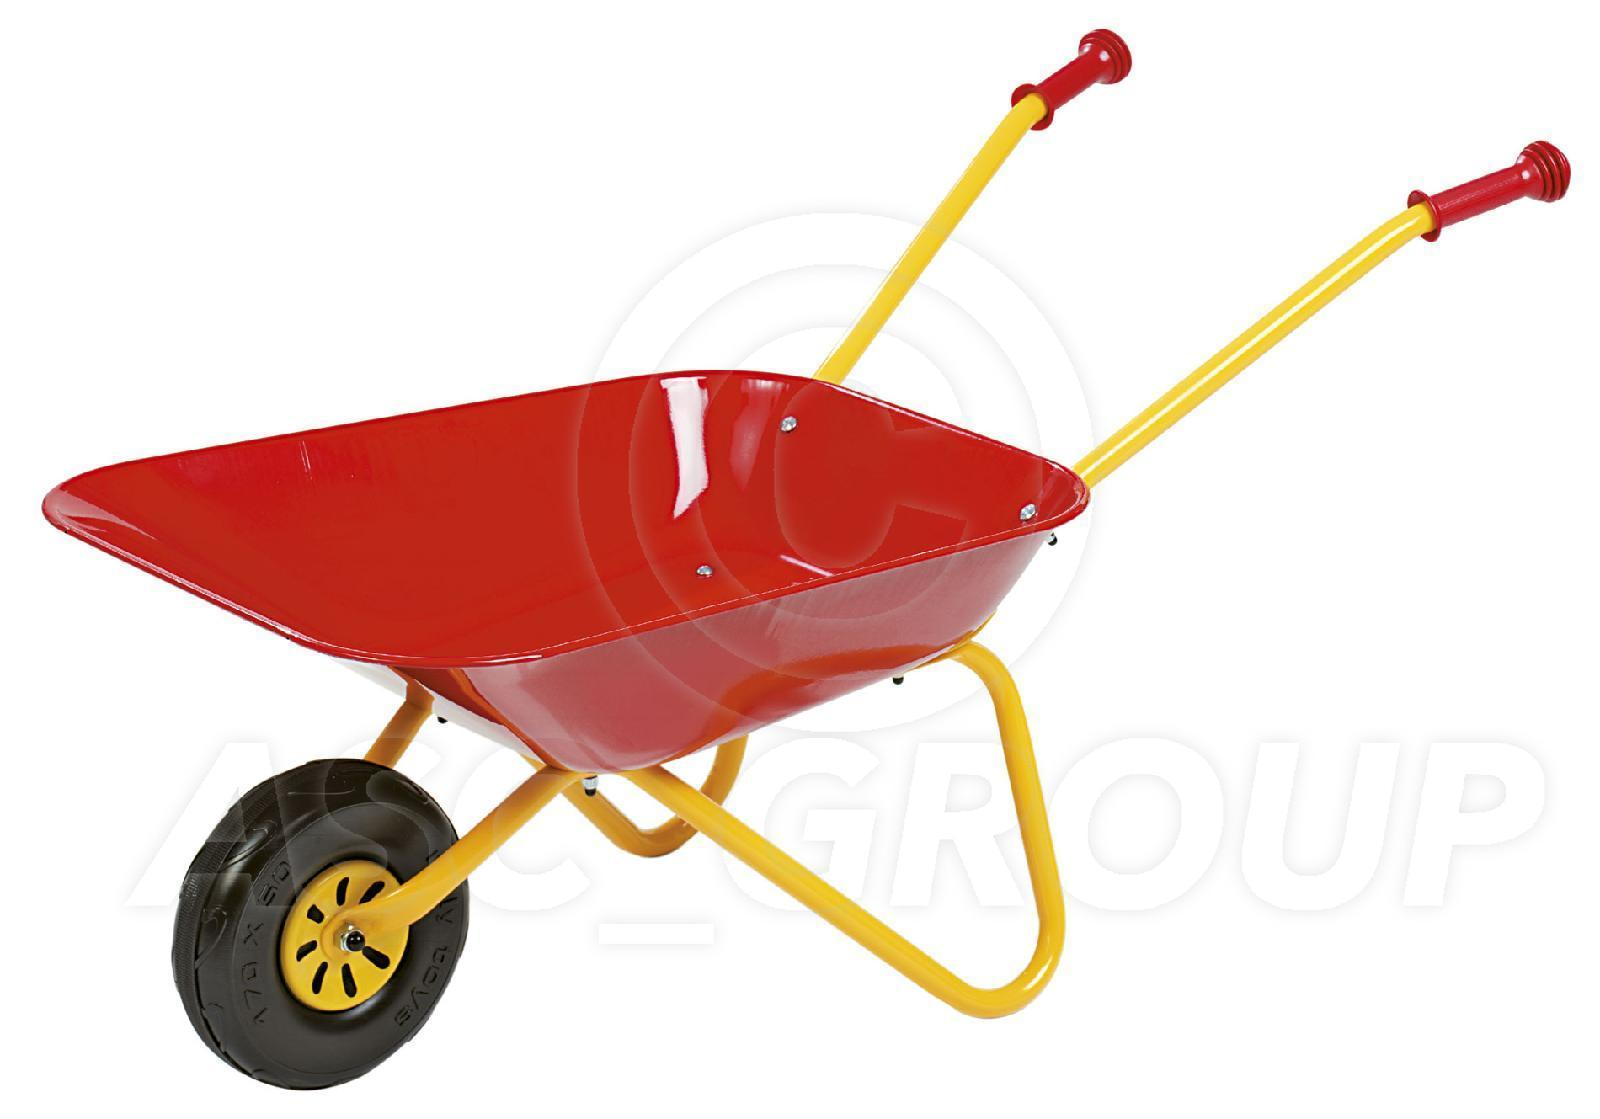 rolly toys metal play wheel barrow wheelbarrow red yellow age 2 1 2 plus ebay. Black Bedroom Furniture Sets. Home Design Ideas